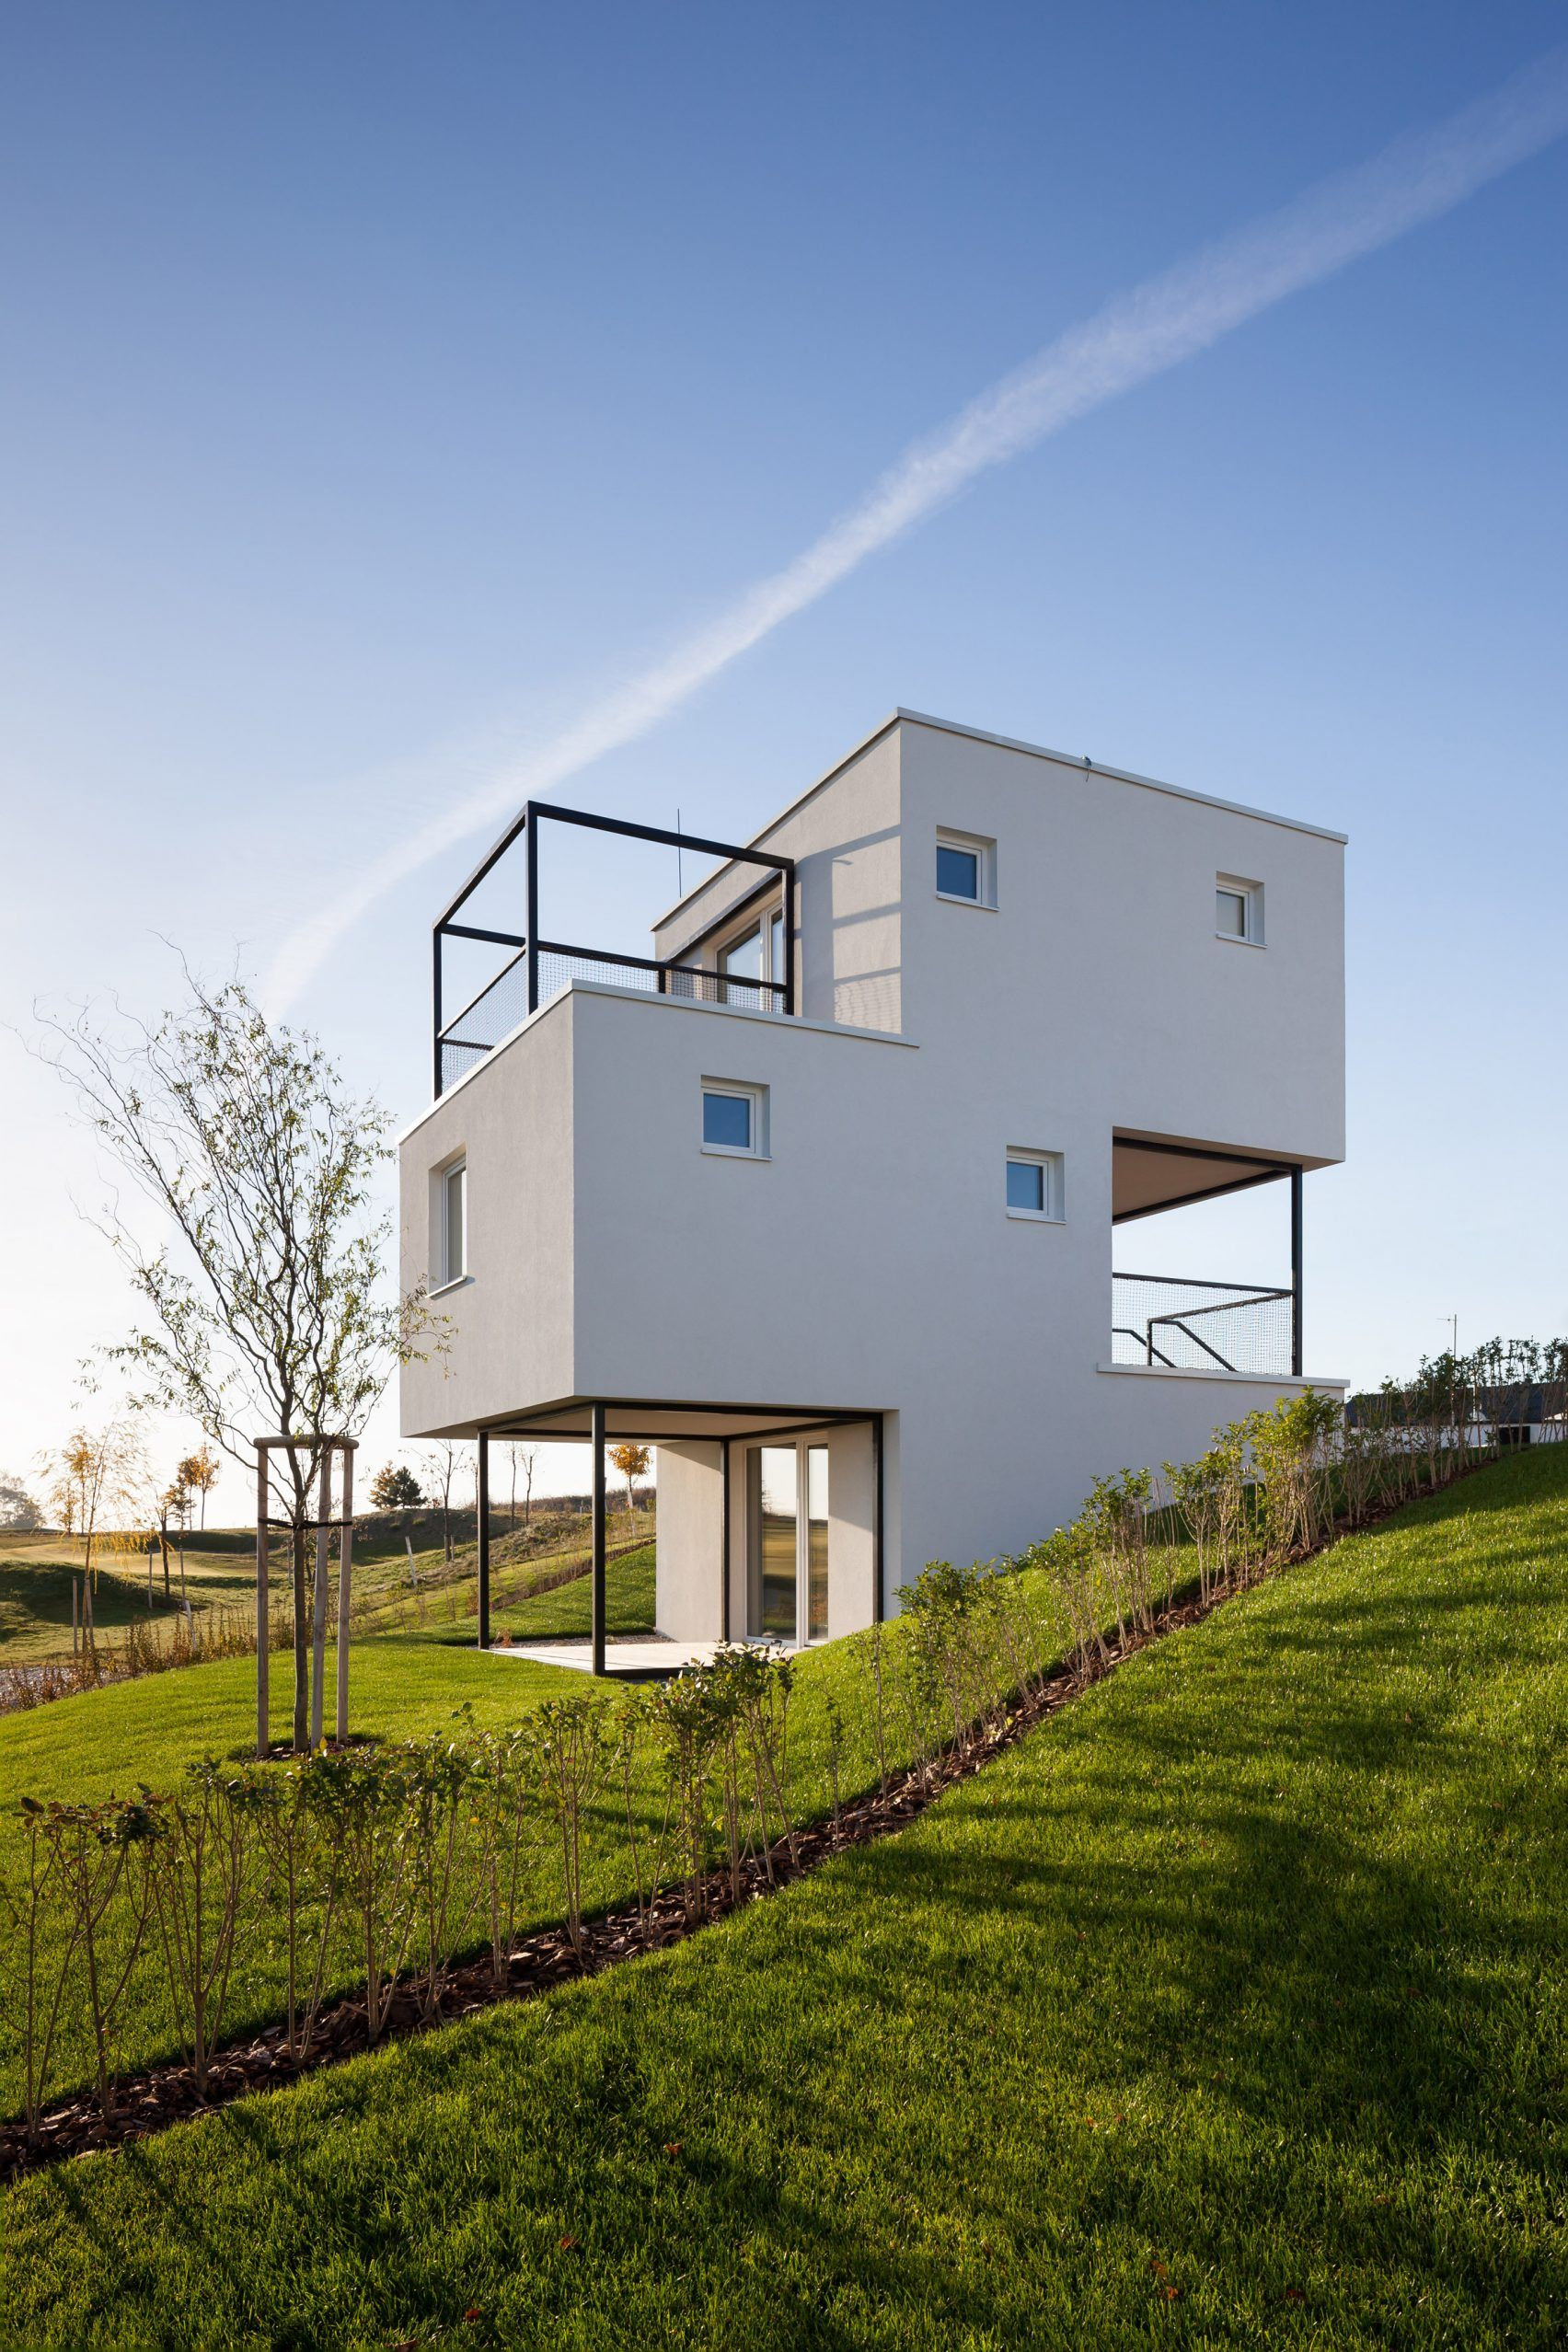 3X3 Houses by Endorphine 3X3 Houses by